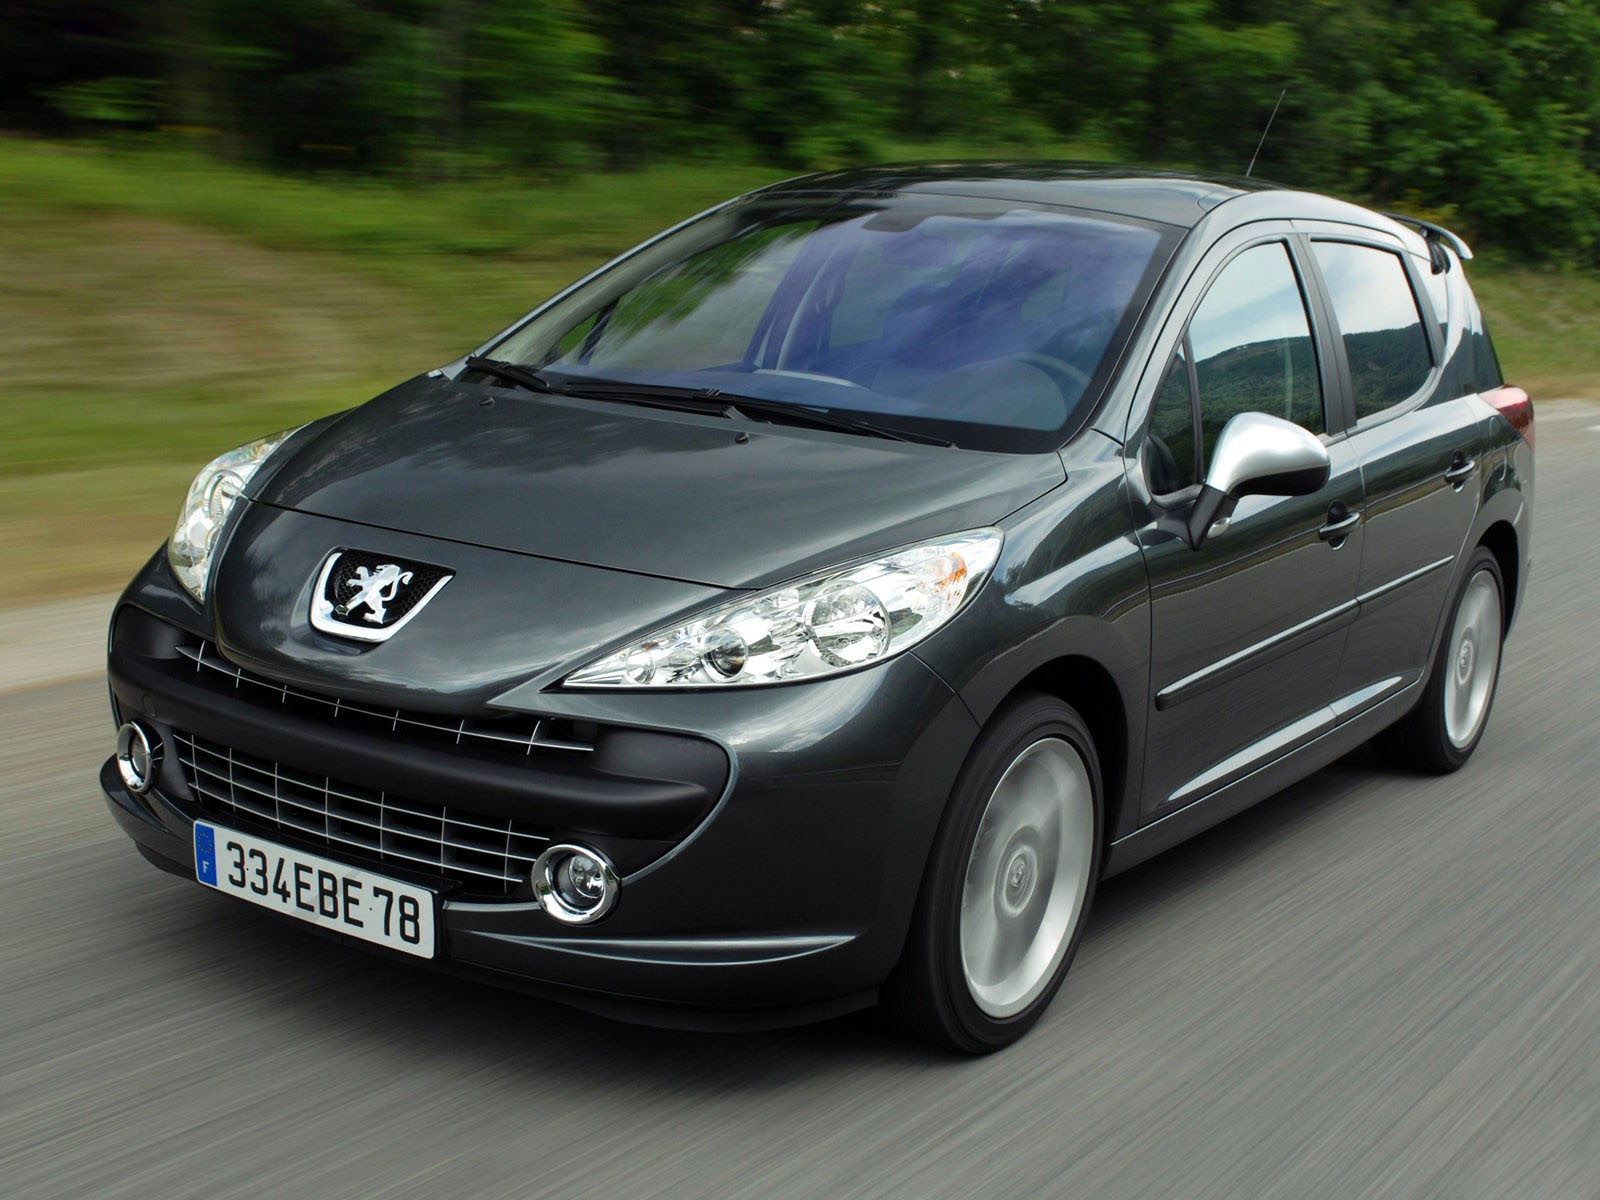 2008 peugeot 207 photos informations articles. Black Bedroom Furniture Sets. Home Design Ideas